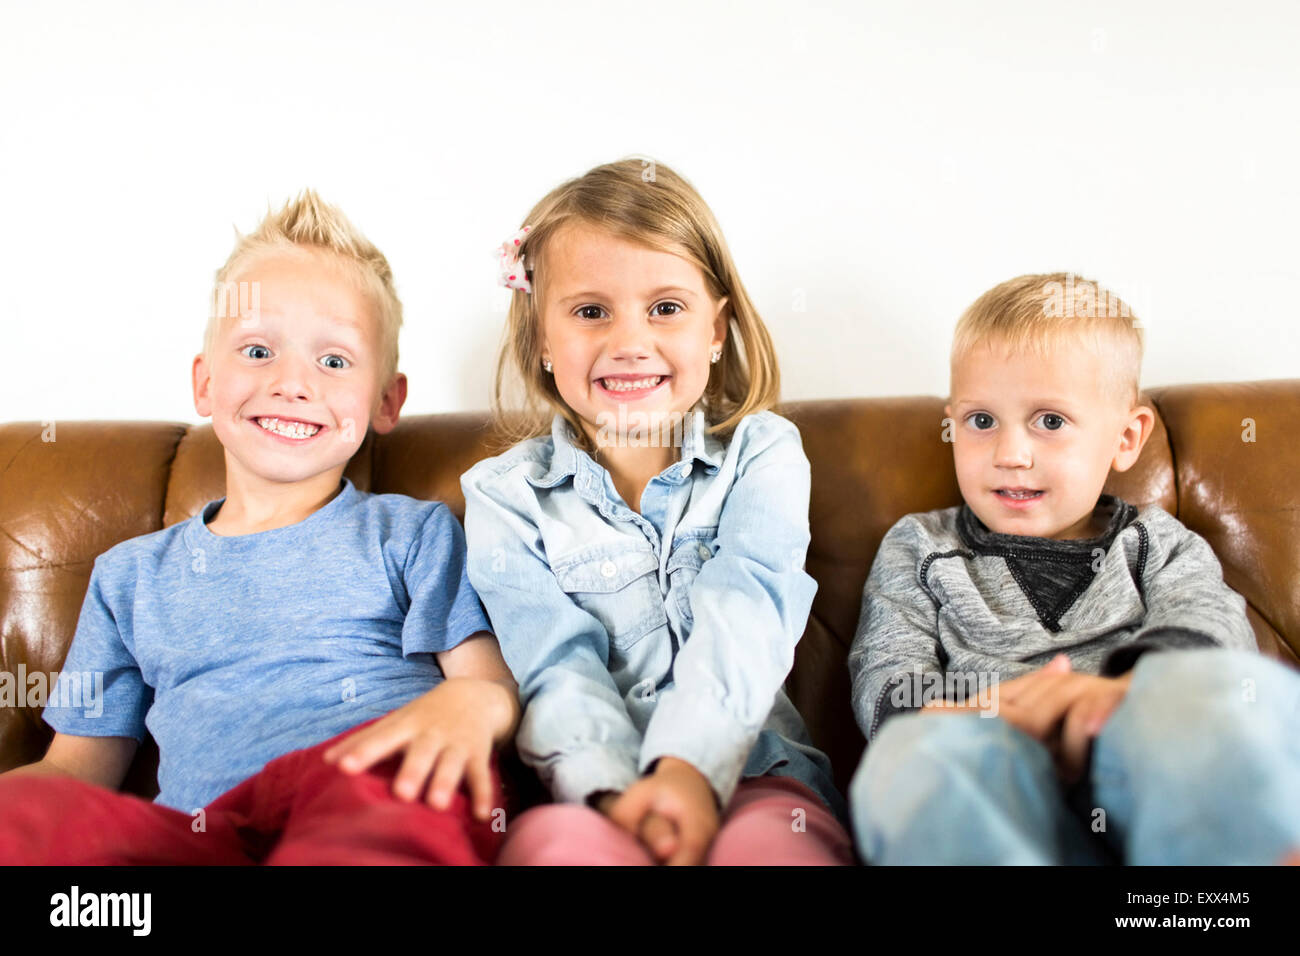 Smiling children (2-3, 4-5) sitting on sofa - Stock Image